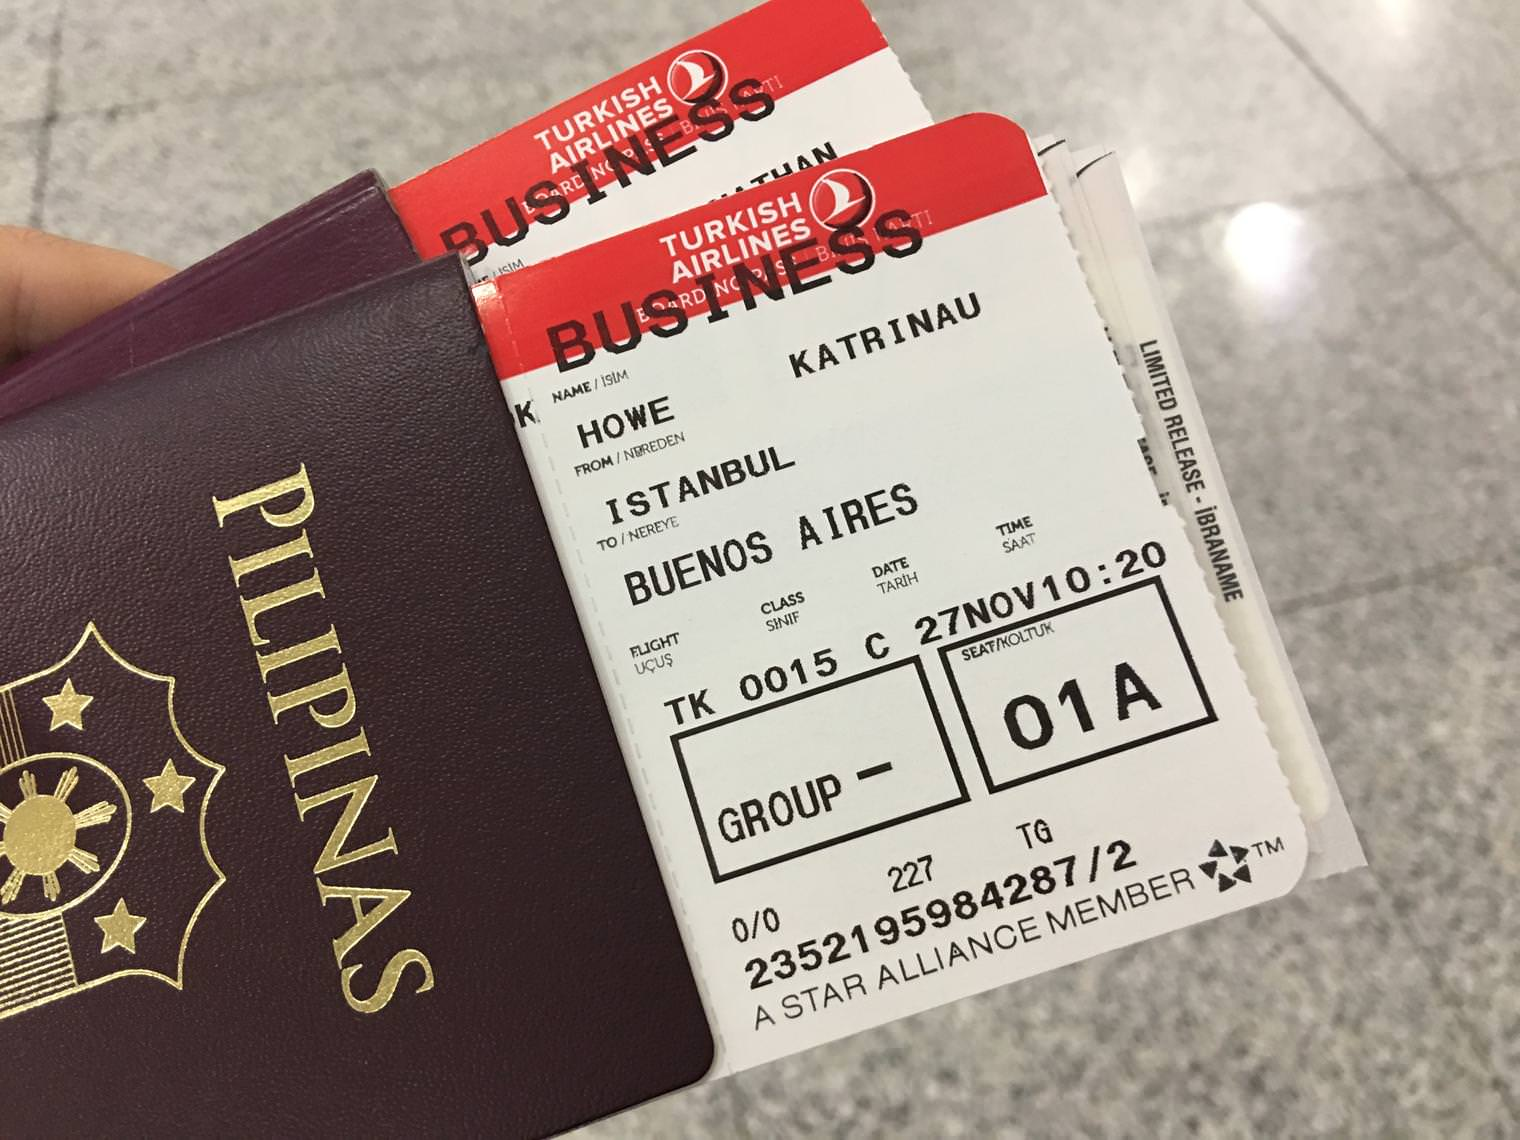 1-istanbul-trip-with-shangri-la-inflow-travel-and-turkish-airlines